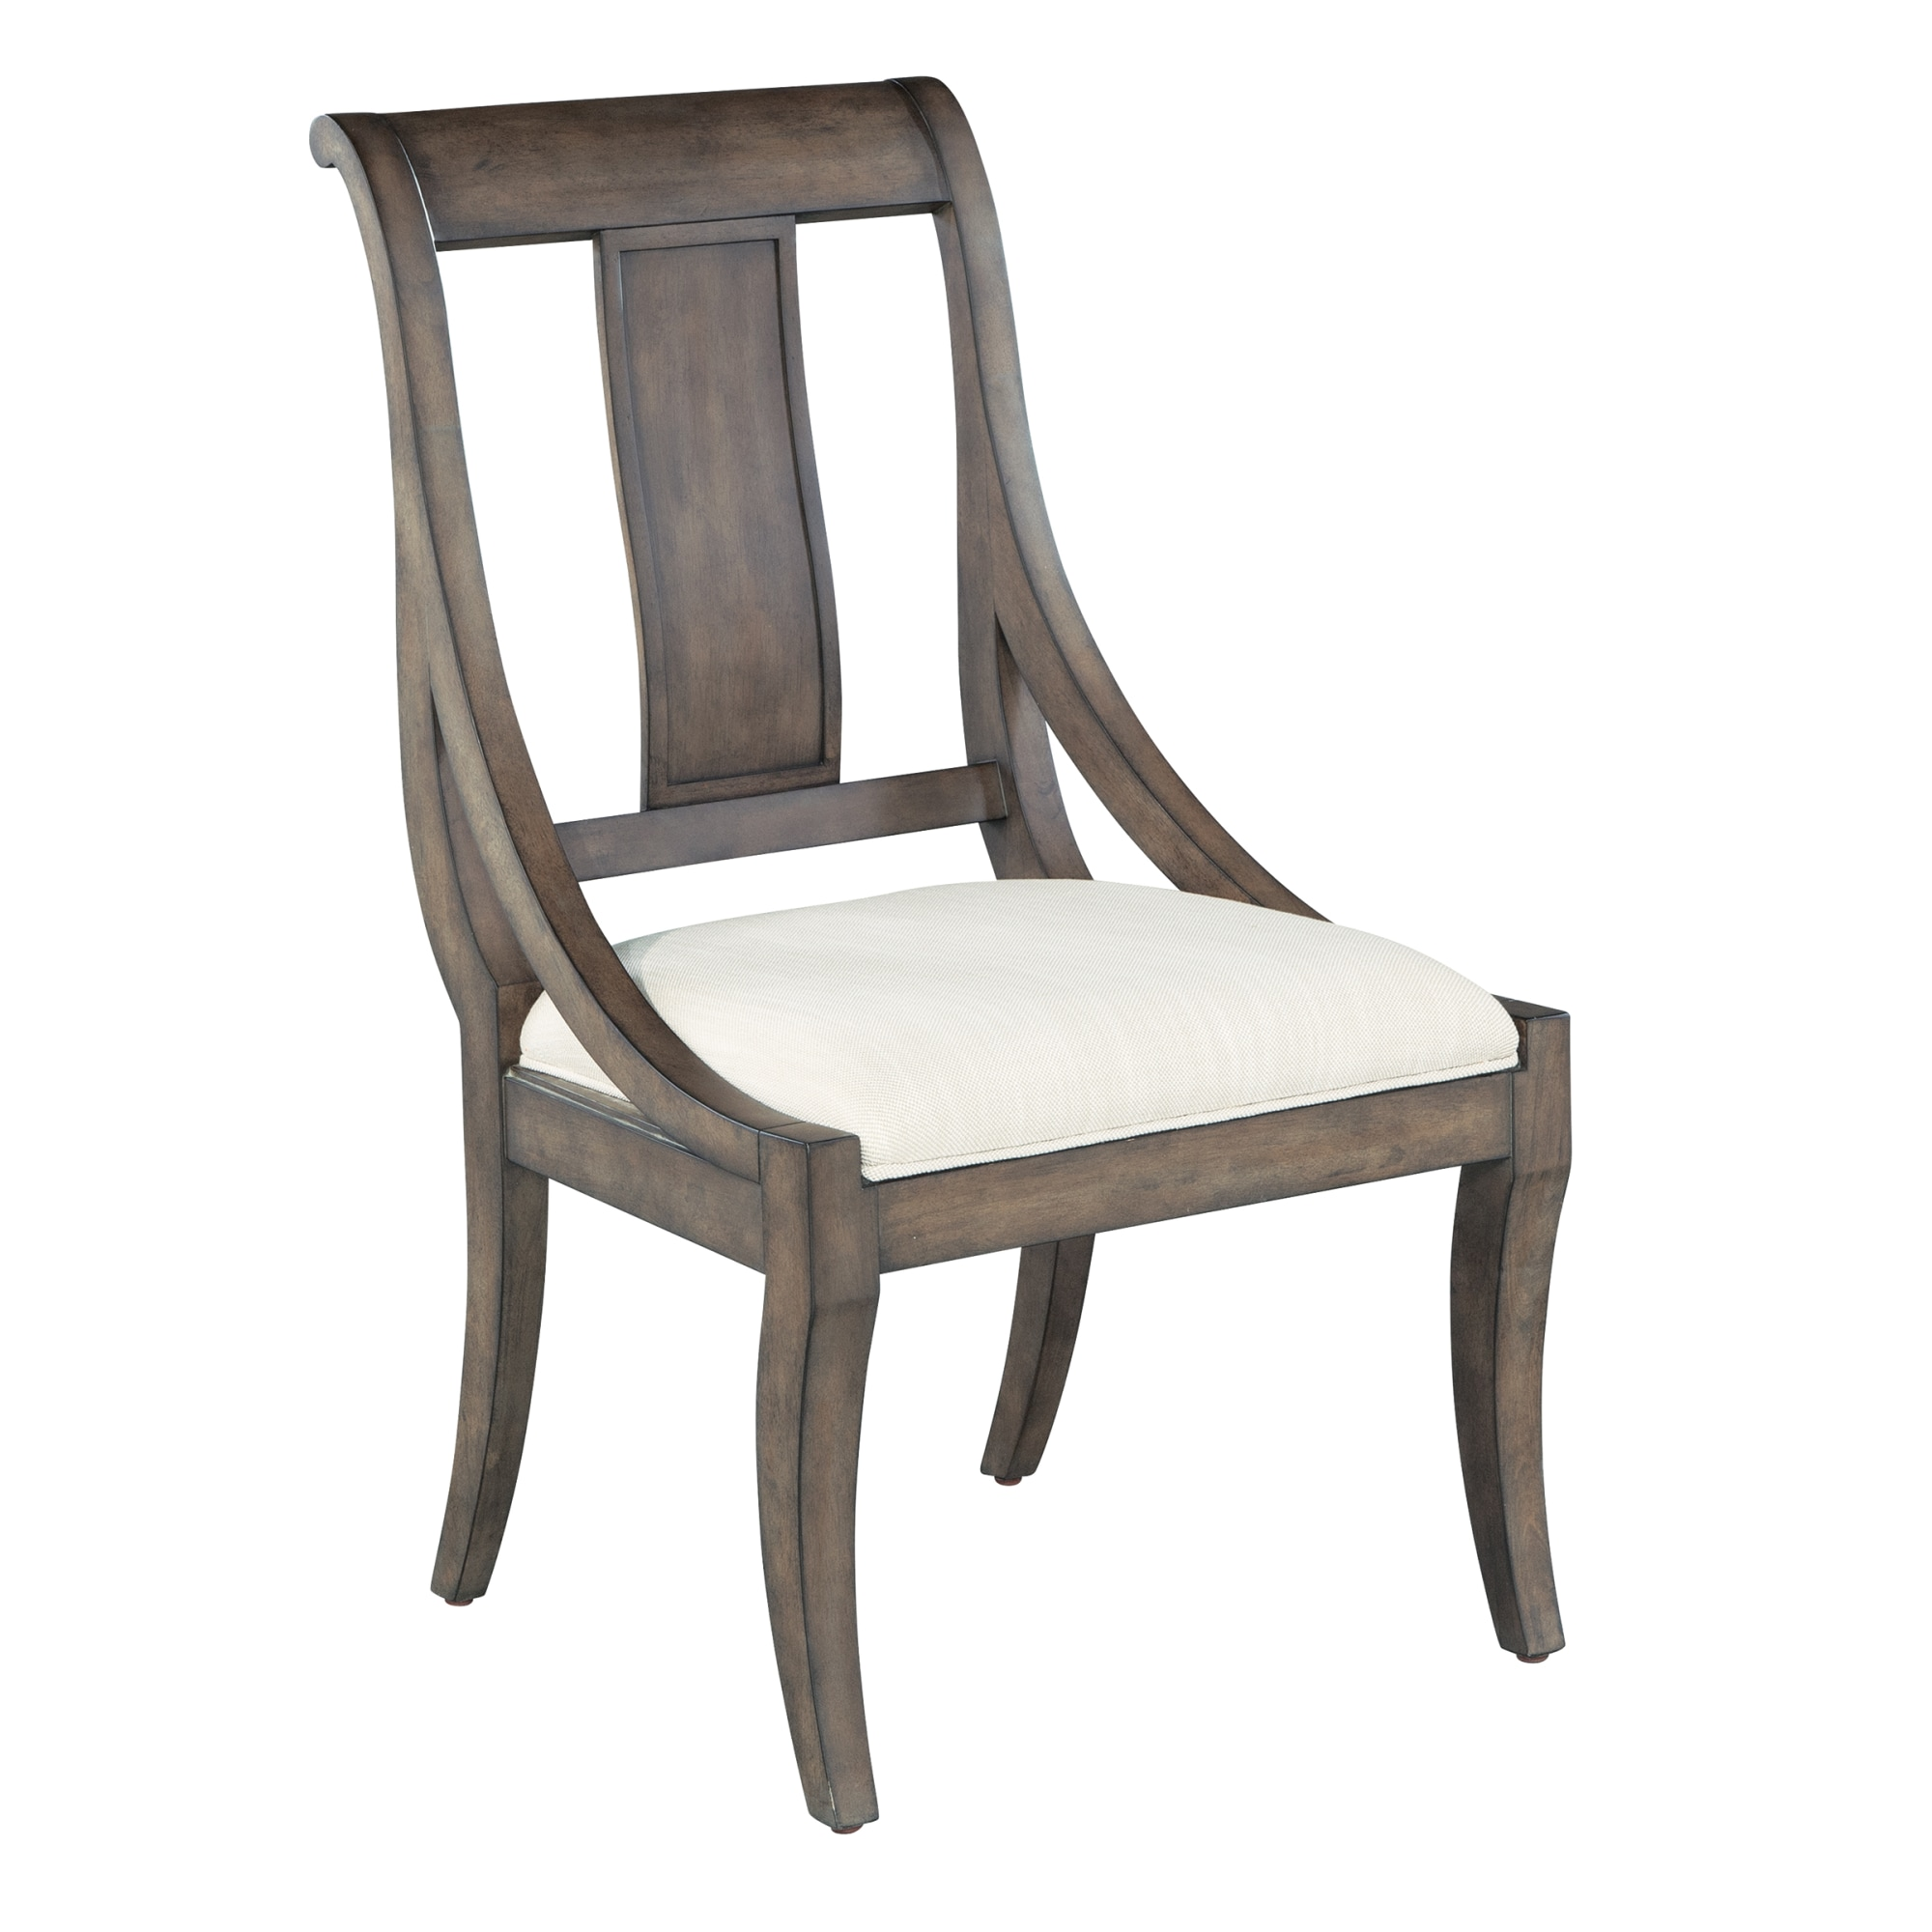 Image for 2-3526 Lincoln Park Sling Side Chair from Hekman Official Website